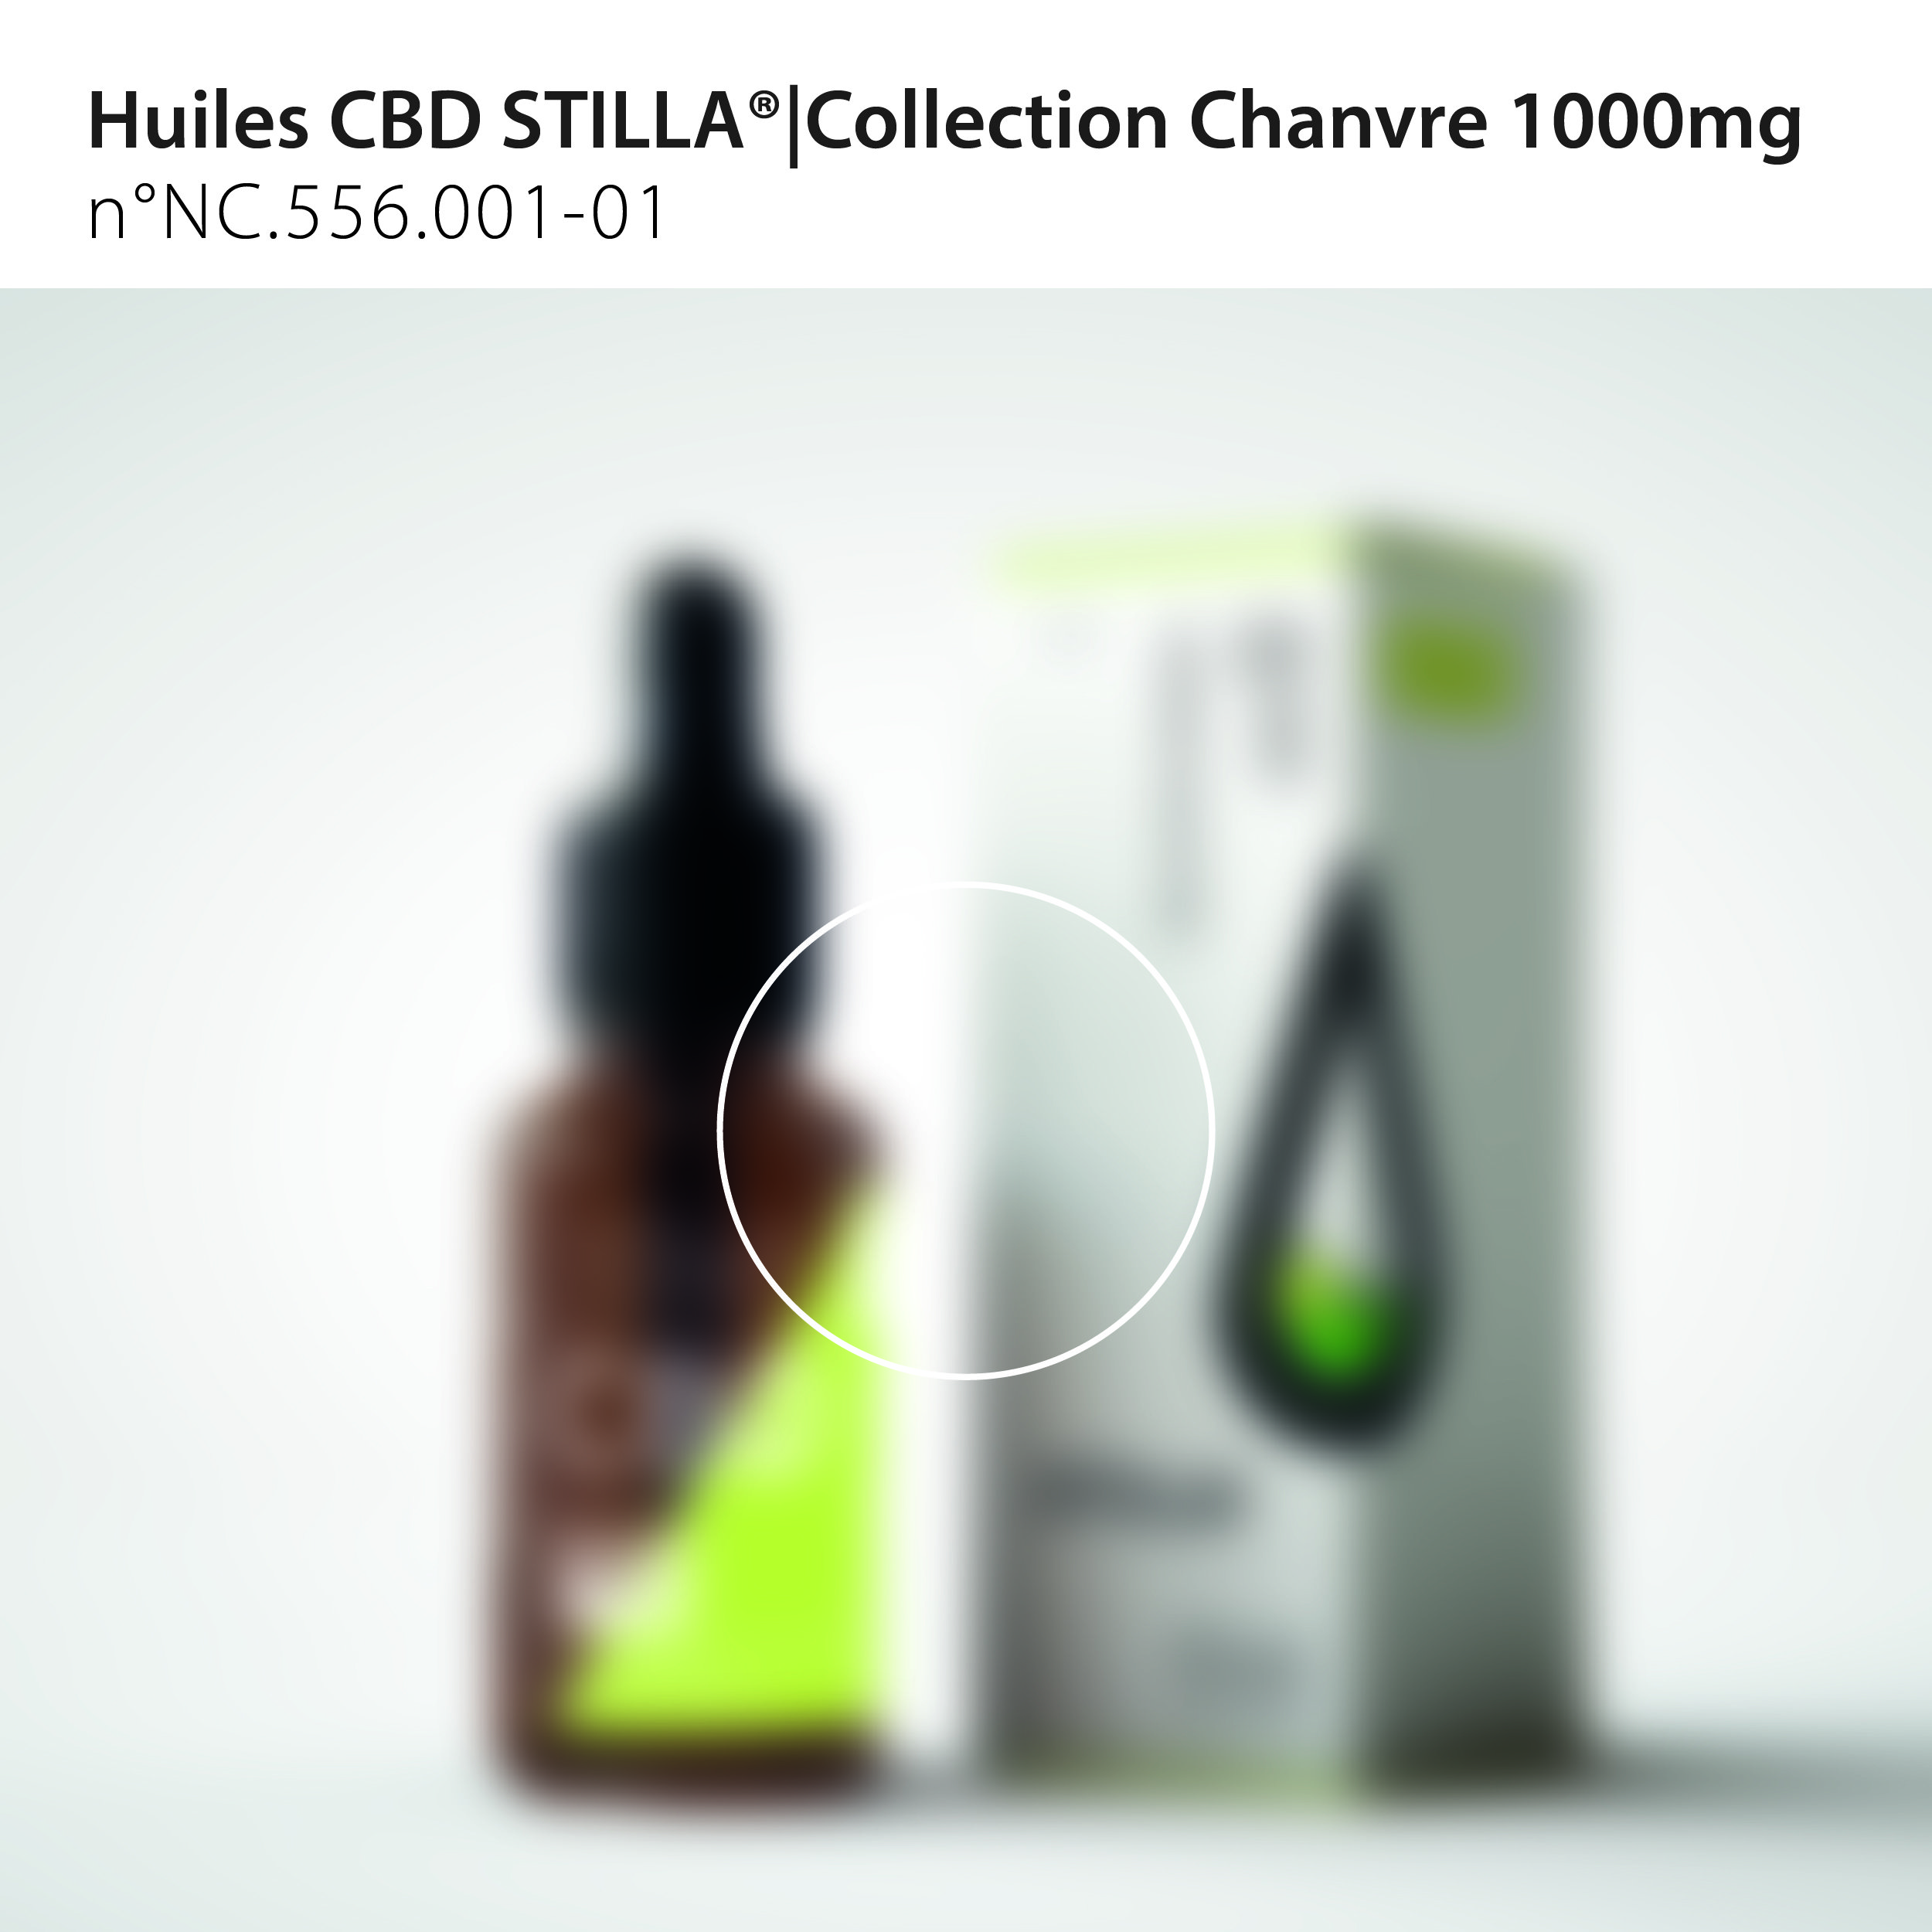 CHANVRE1000_Analyses1.jpg